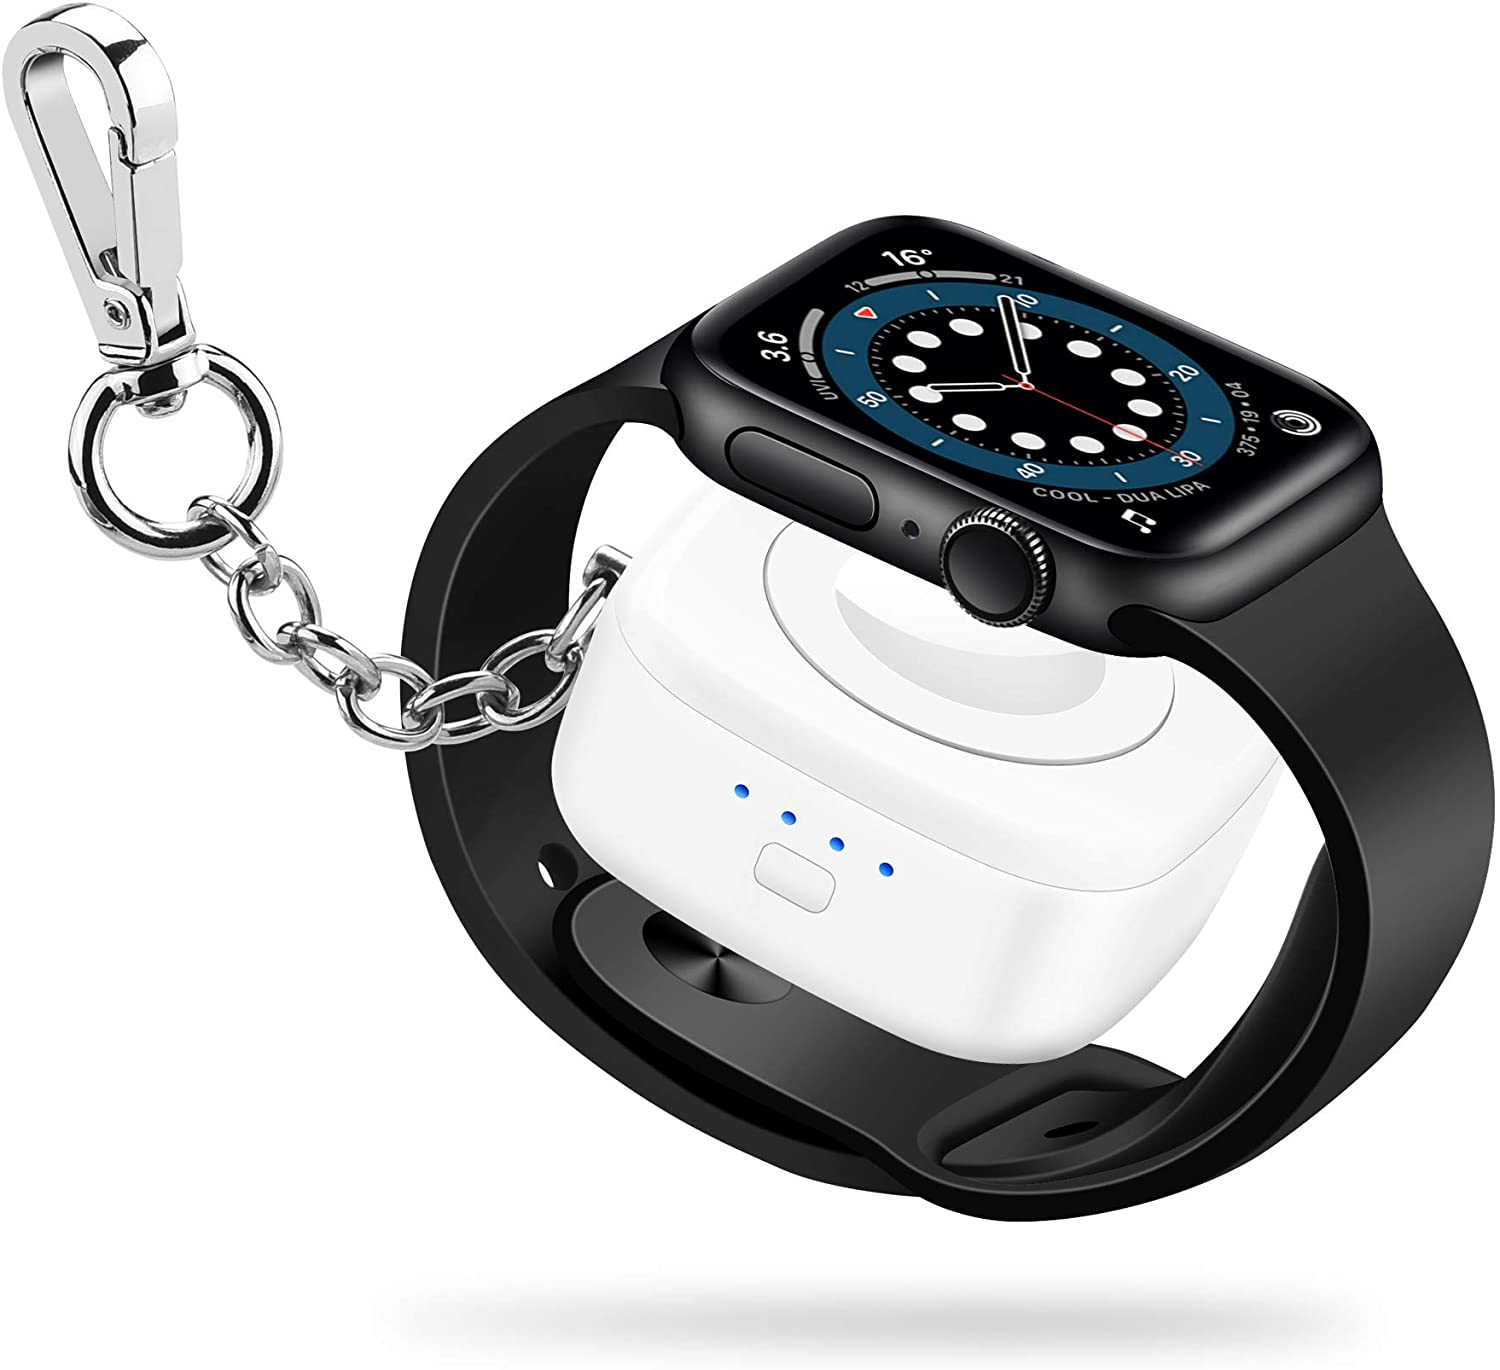 Portable-iWatch-Charger【Apple-MFi Certified】Apple-Watch-Wireless-Potable-Charger 1000mAh Apple-Watch-Power-Bank Keychain iWatch portable Apple-Watch-Charger Travel for Apple Watch SeriesSE/6/5/4/3/2/1